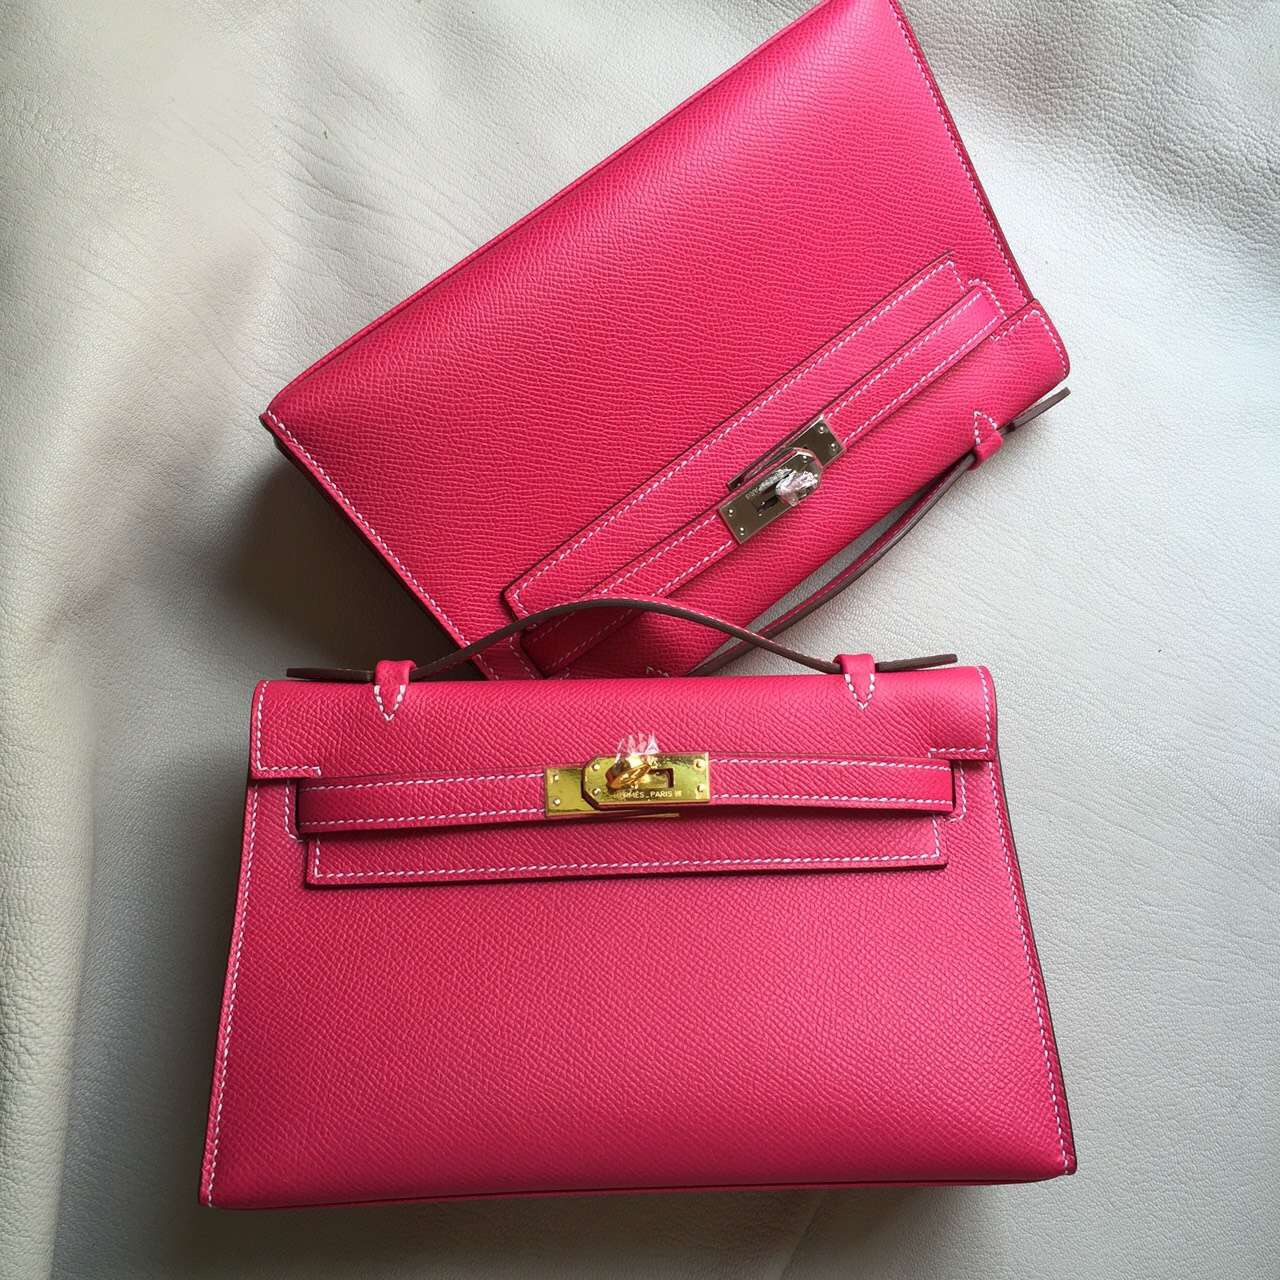 Sale Hermes Epsom Calfskin Leather Mini Kelly Bag22cm in E5 Rose Tyrien